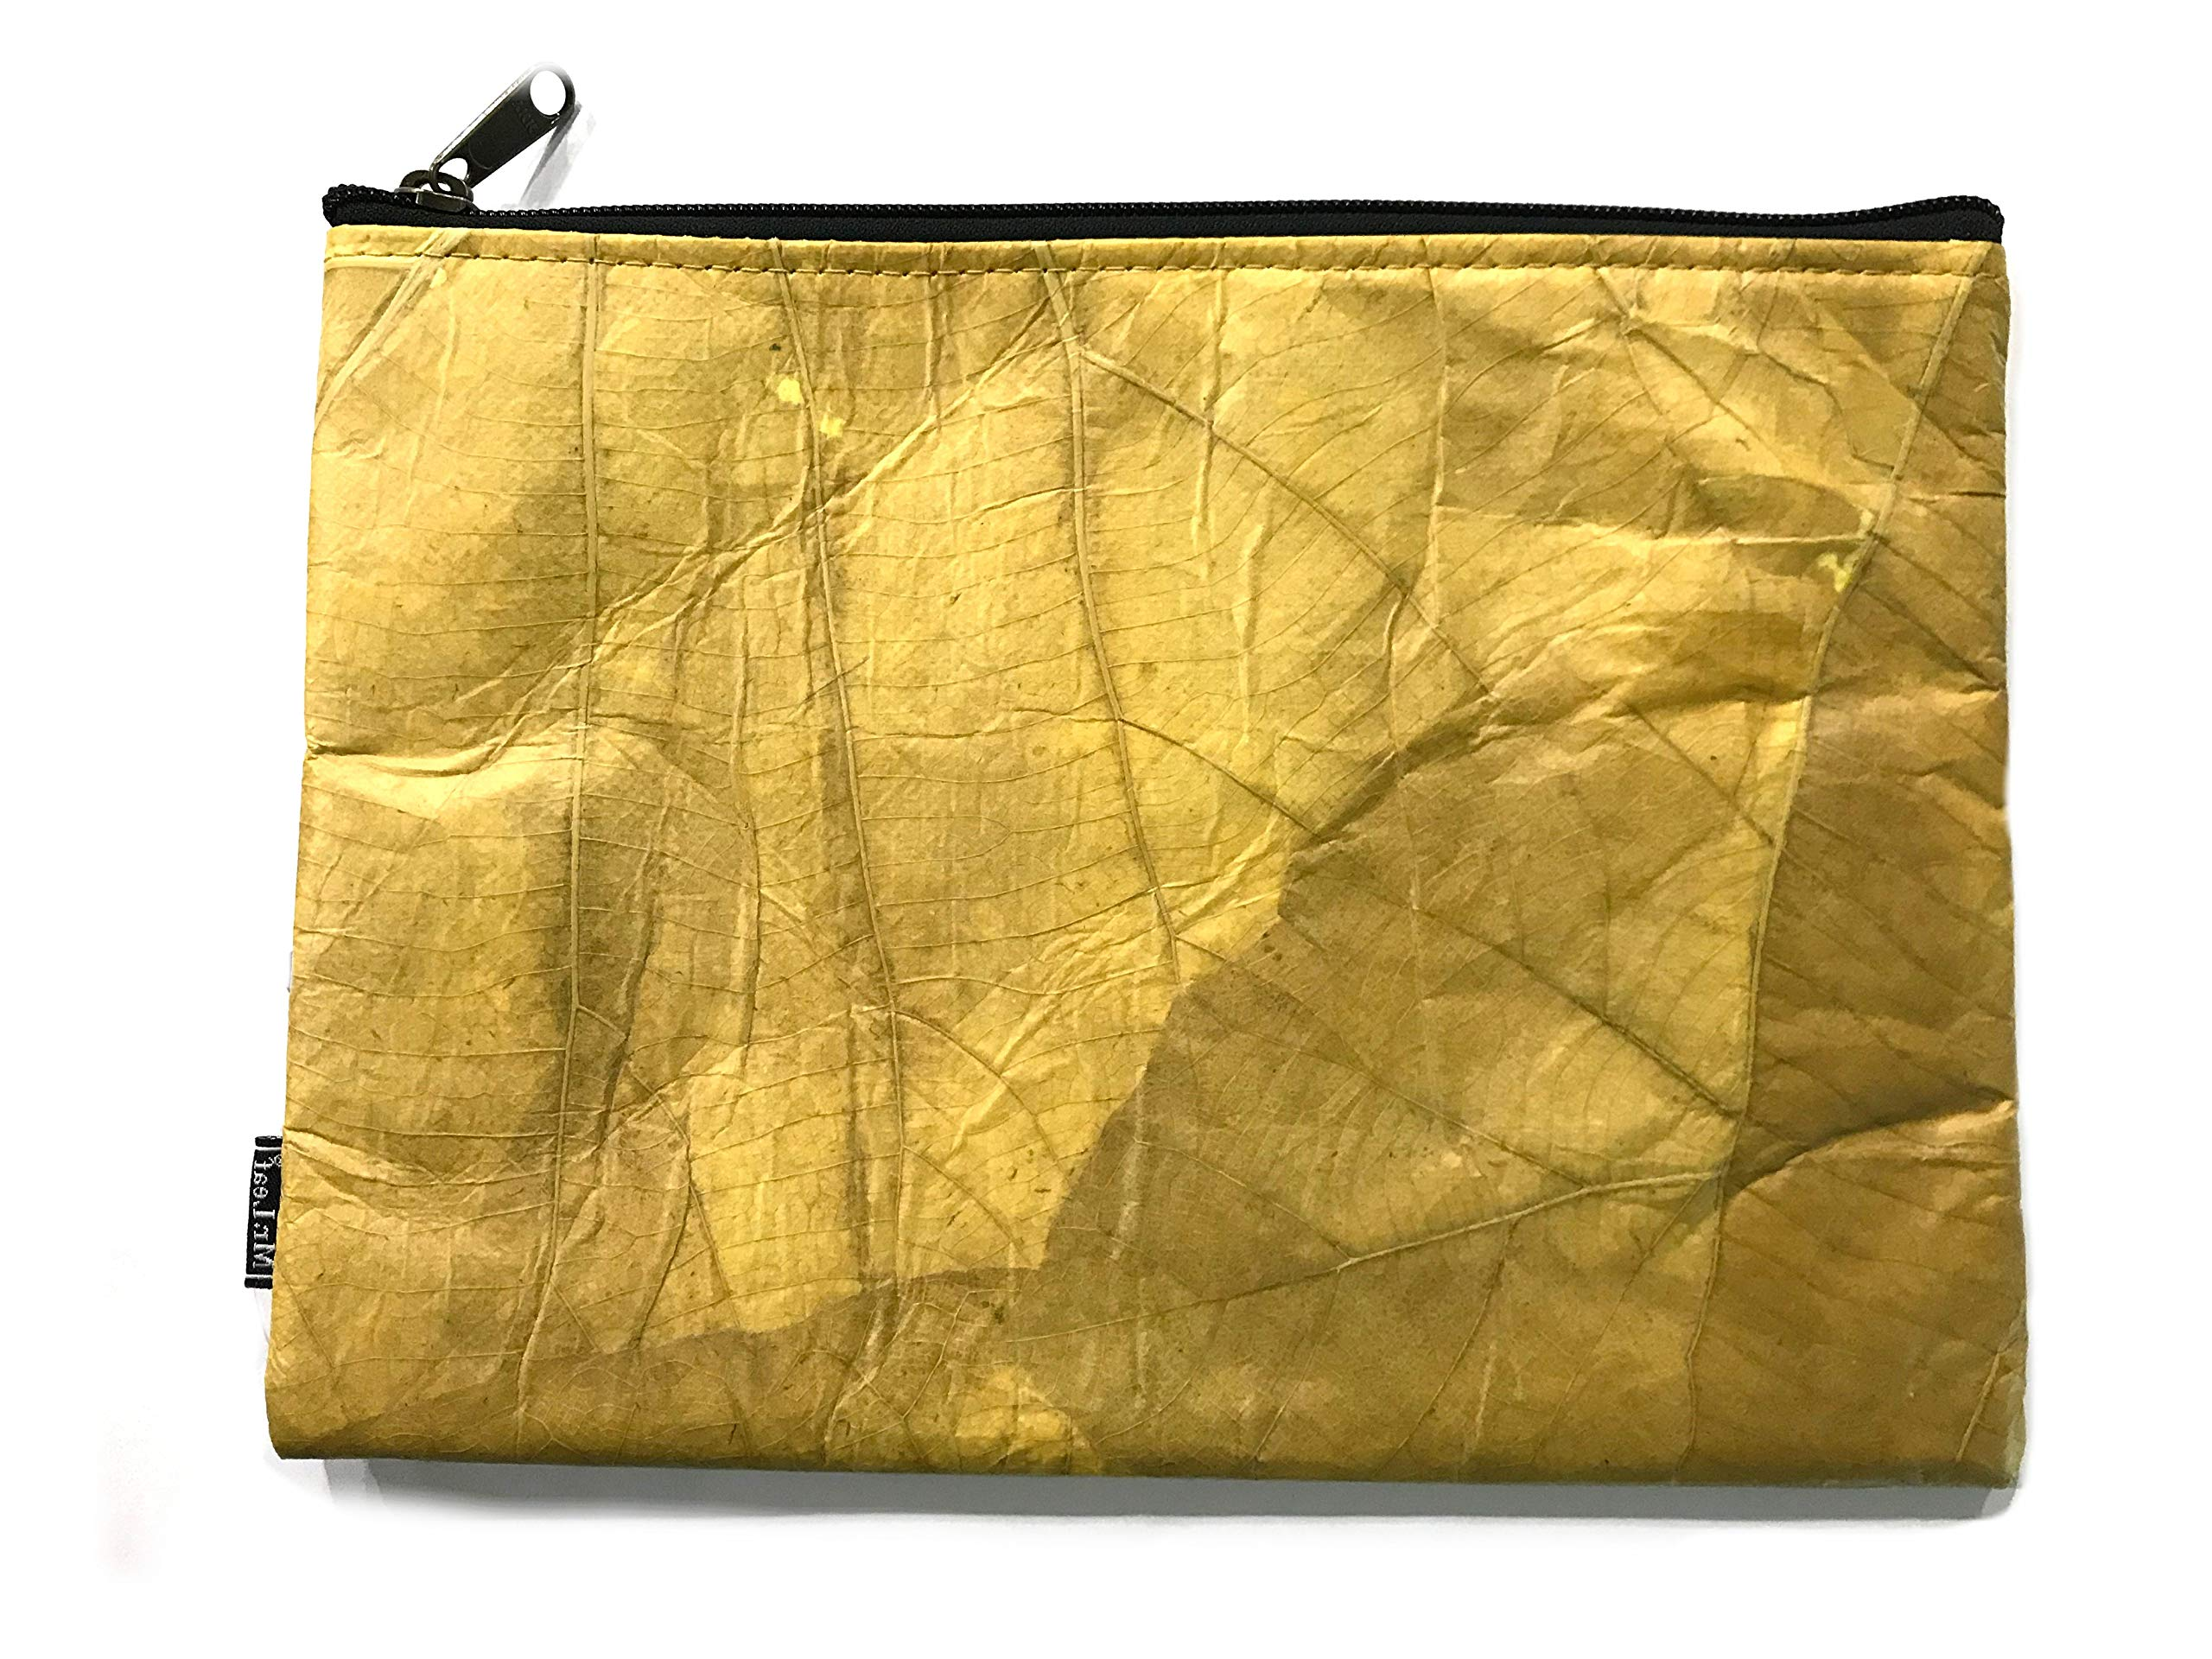 Leaves of Nature Document Bag Money Bag Water Resistant Envelope Pouch for Cash Passport Jewelry and Valuables